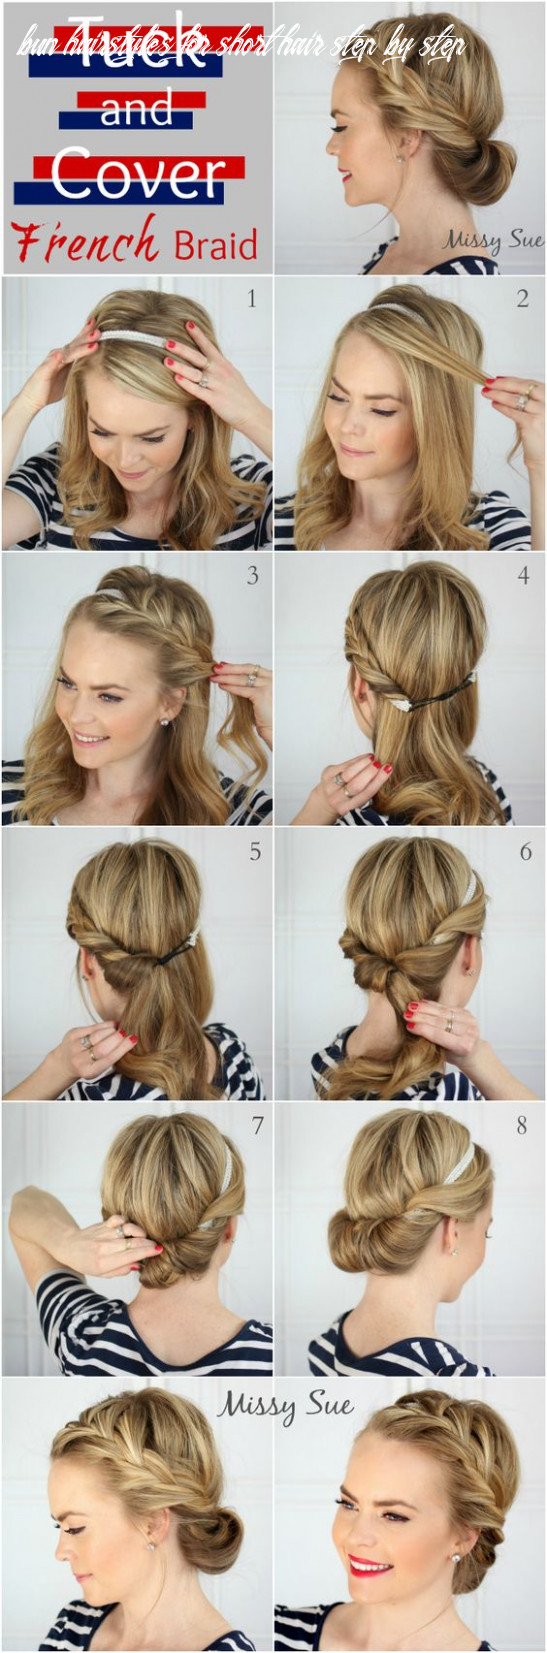 12 easy step by step hair tutorials for long, medium,short hair